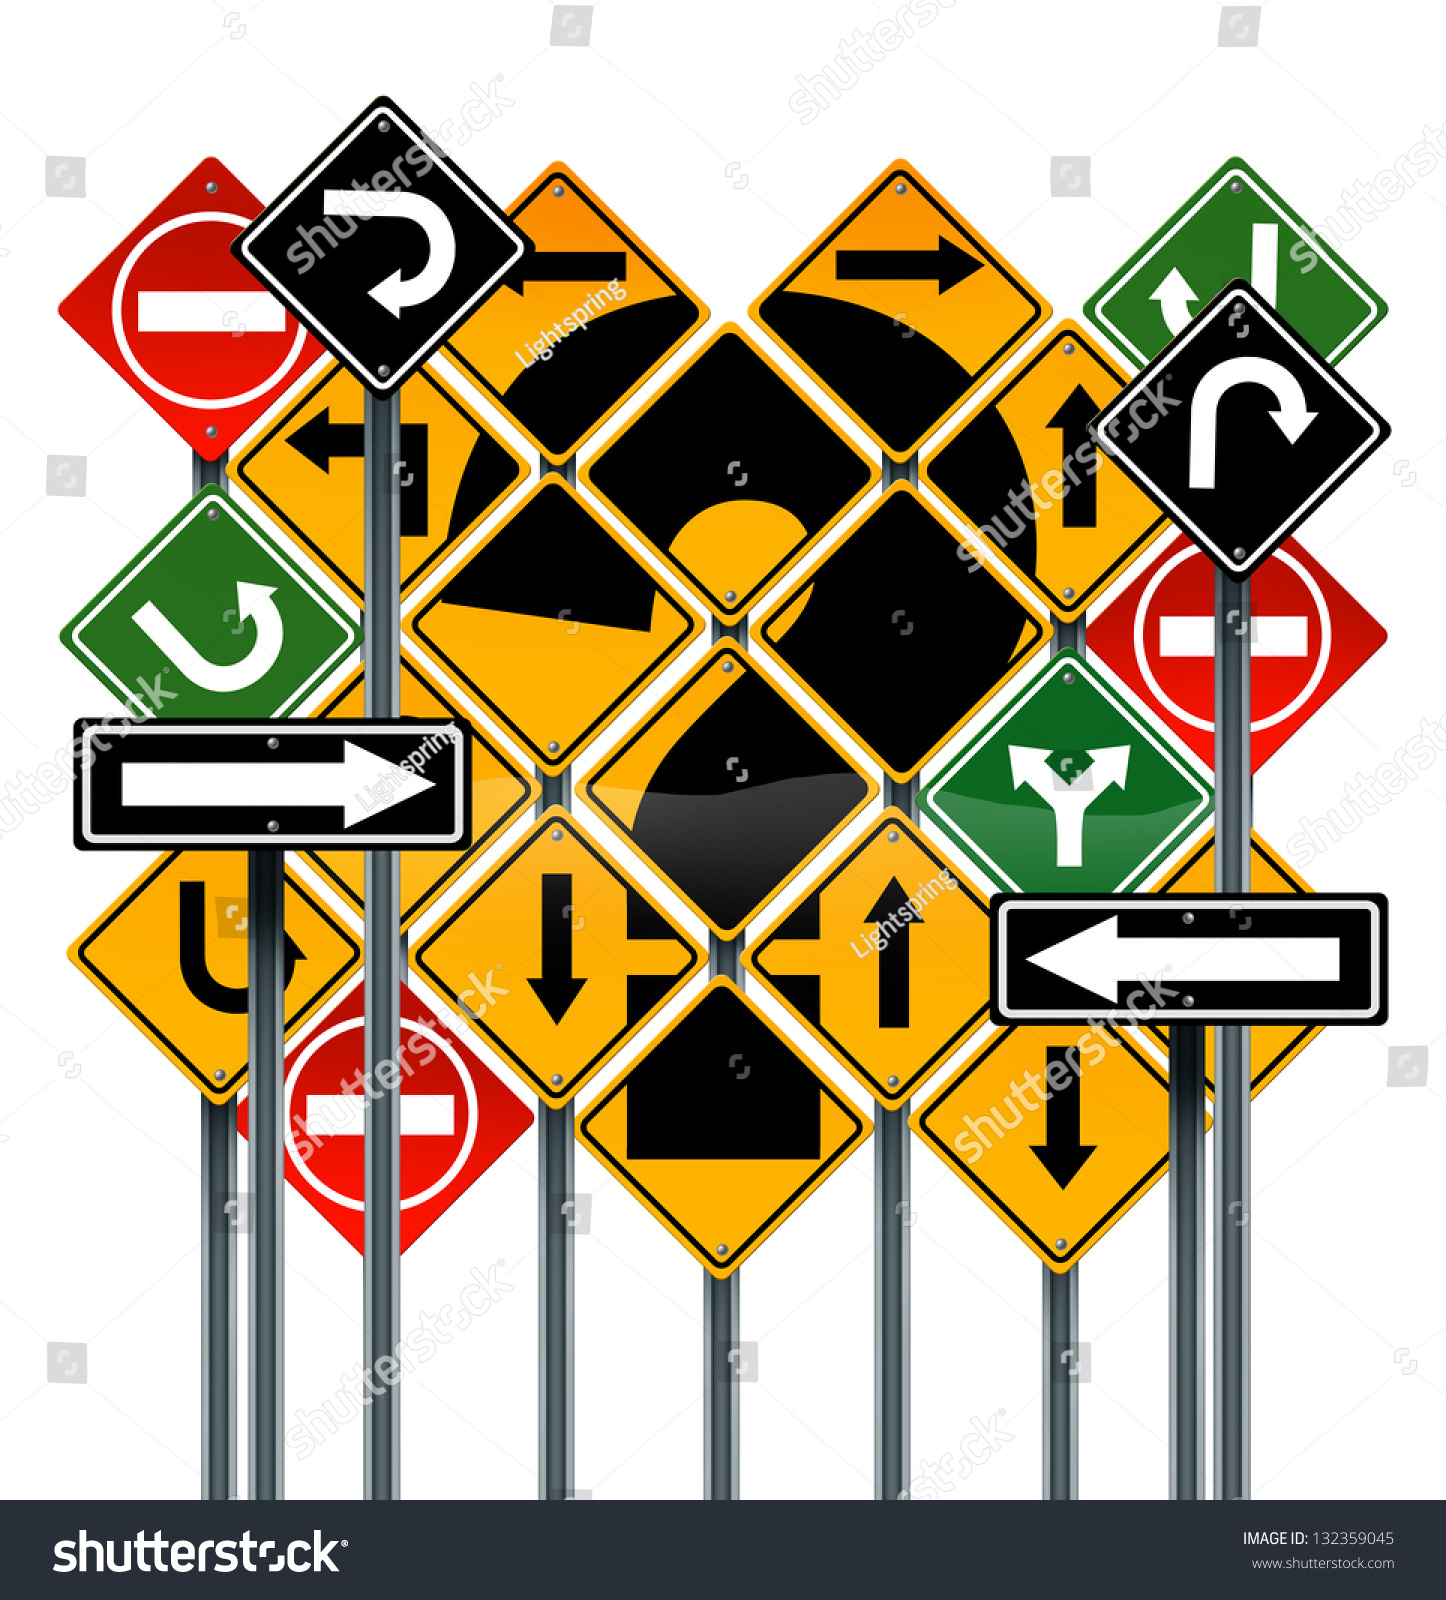 confusing directions clipart wwwimgkidcom the image